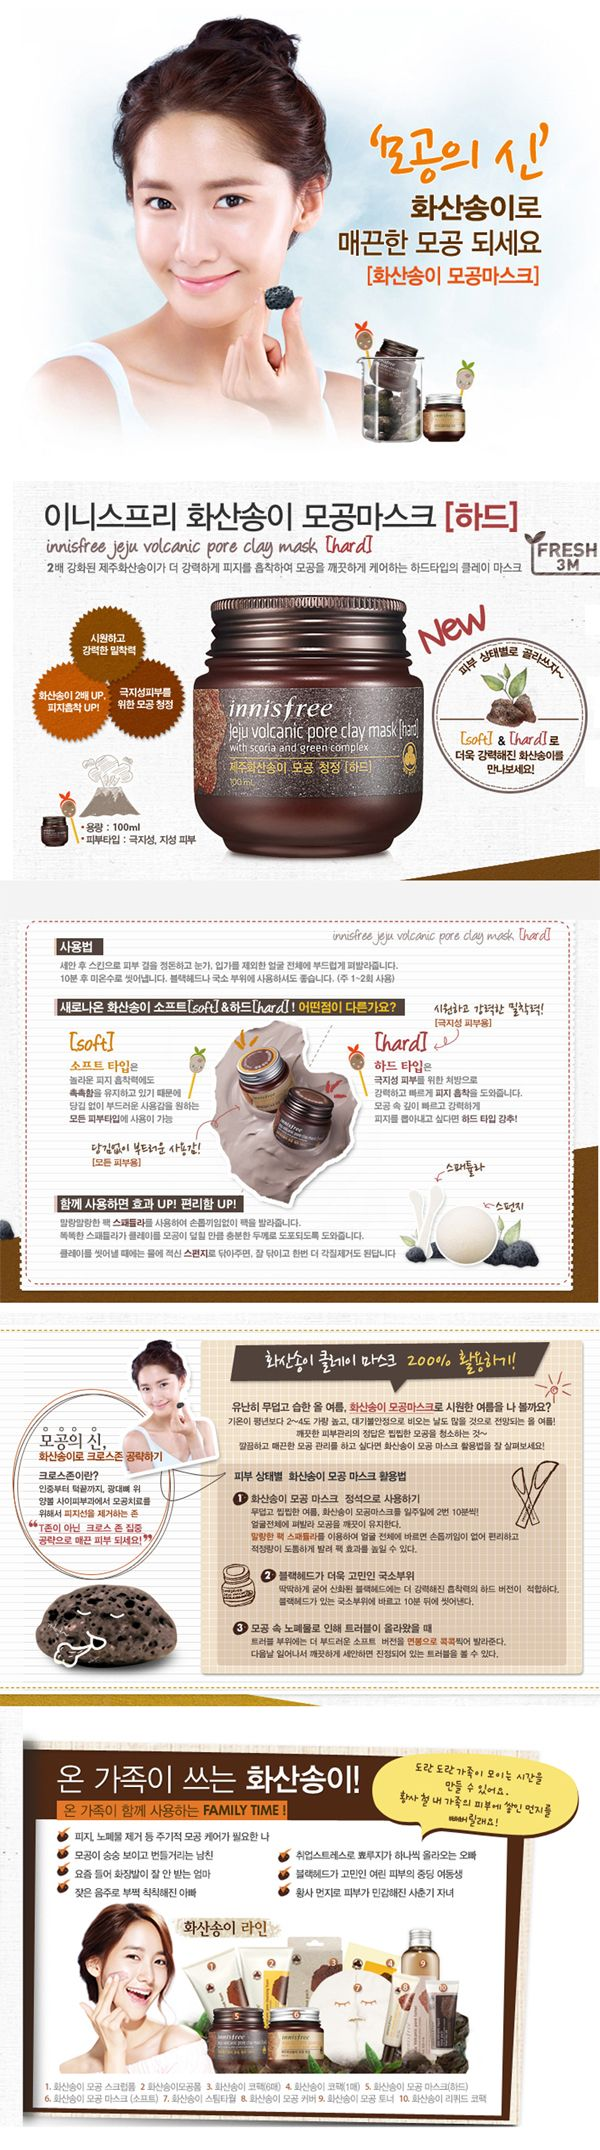 [Innisfree] Jeju Volcanic Pore Clay Mask (Hard)